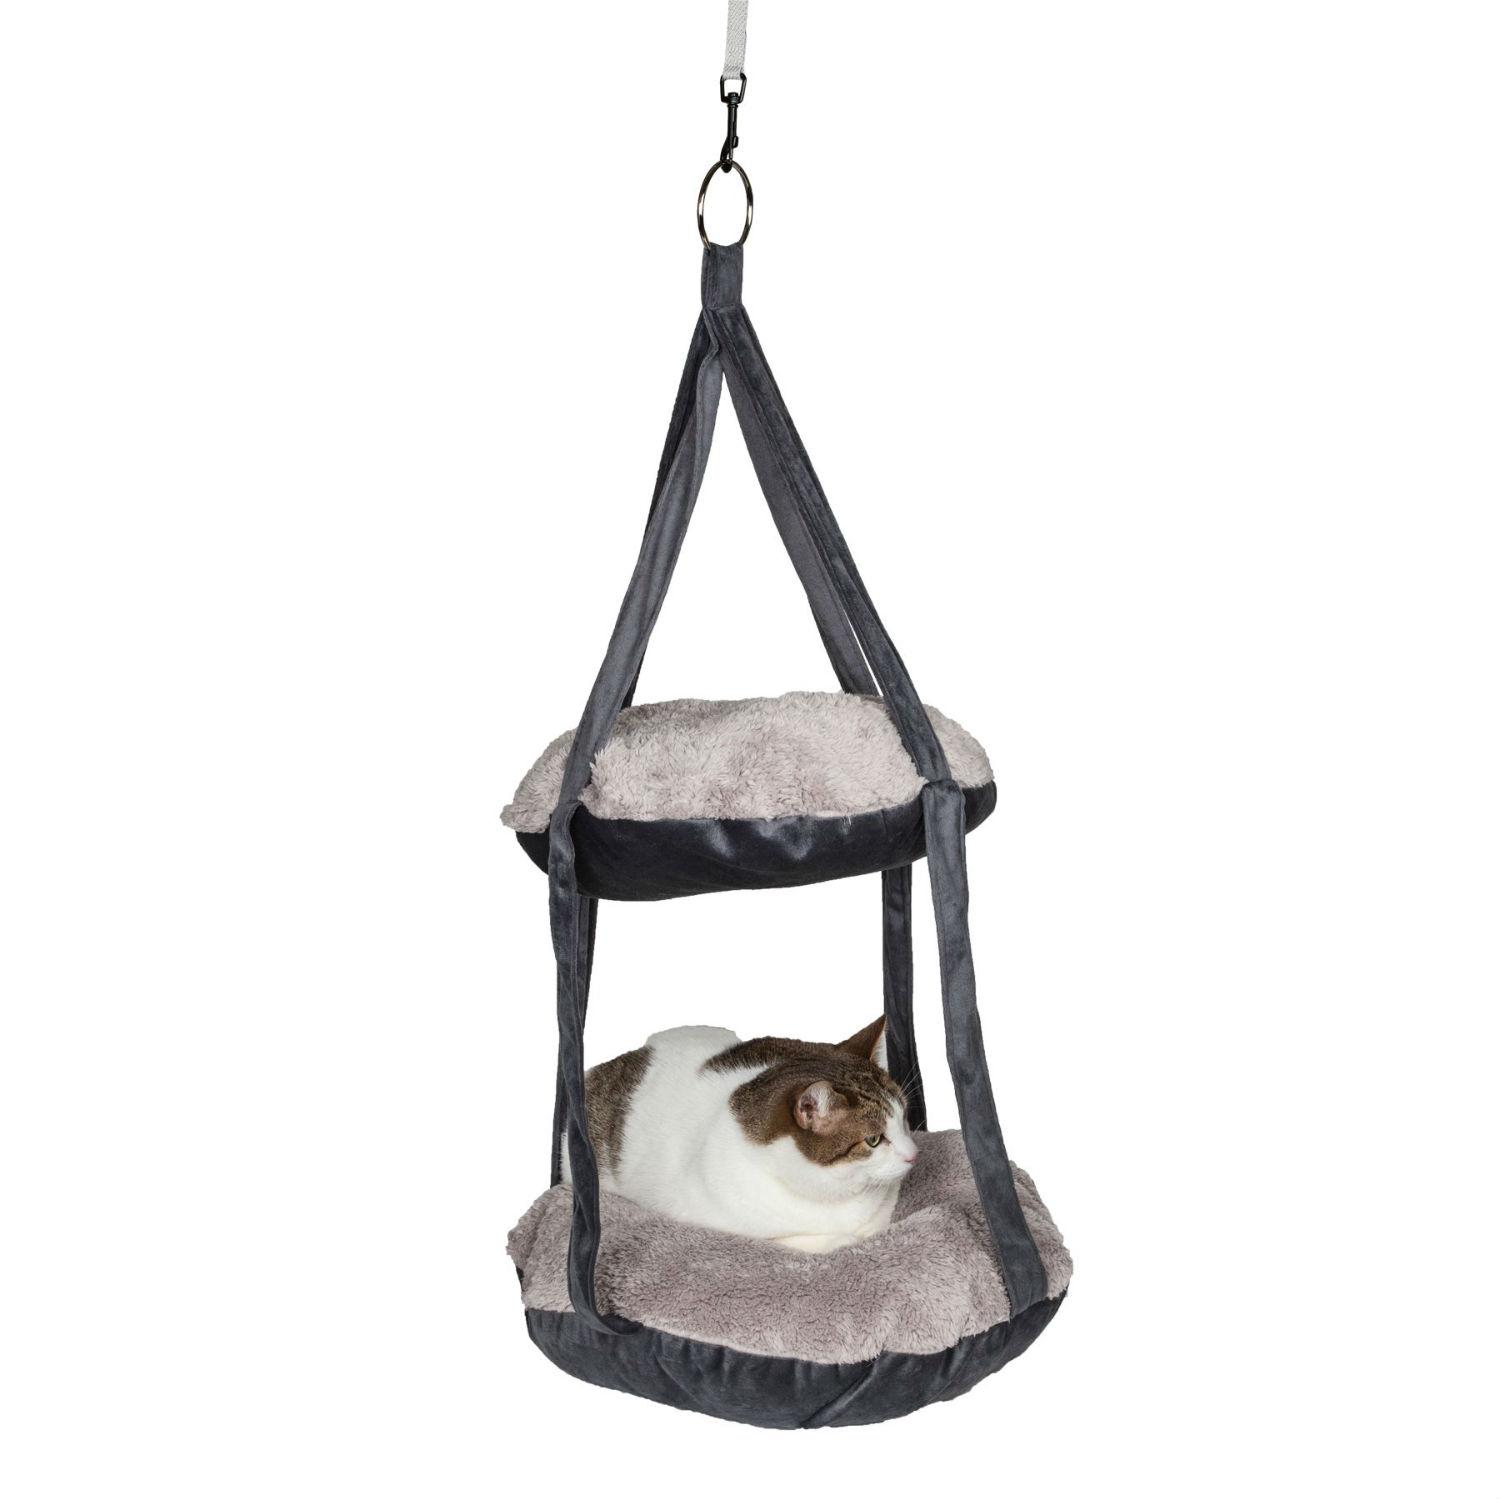 Pet Life Kittyhaus Dual-Lounger Kitty Cat Pillow Hammock Lounge - Gray